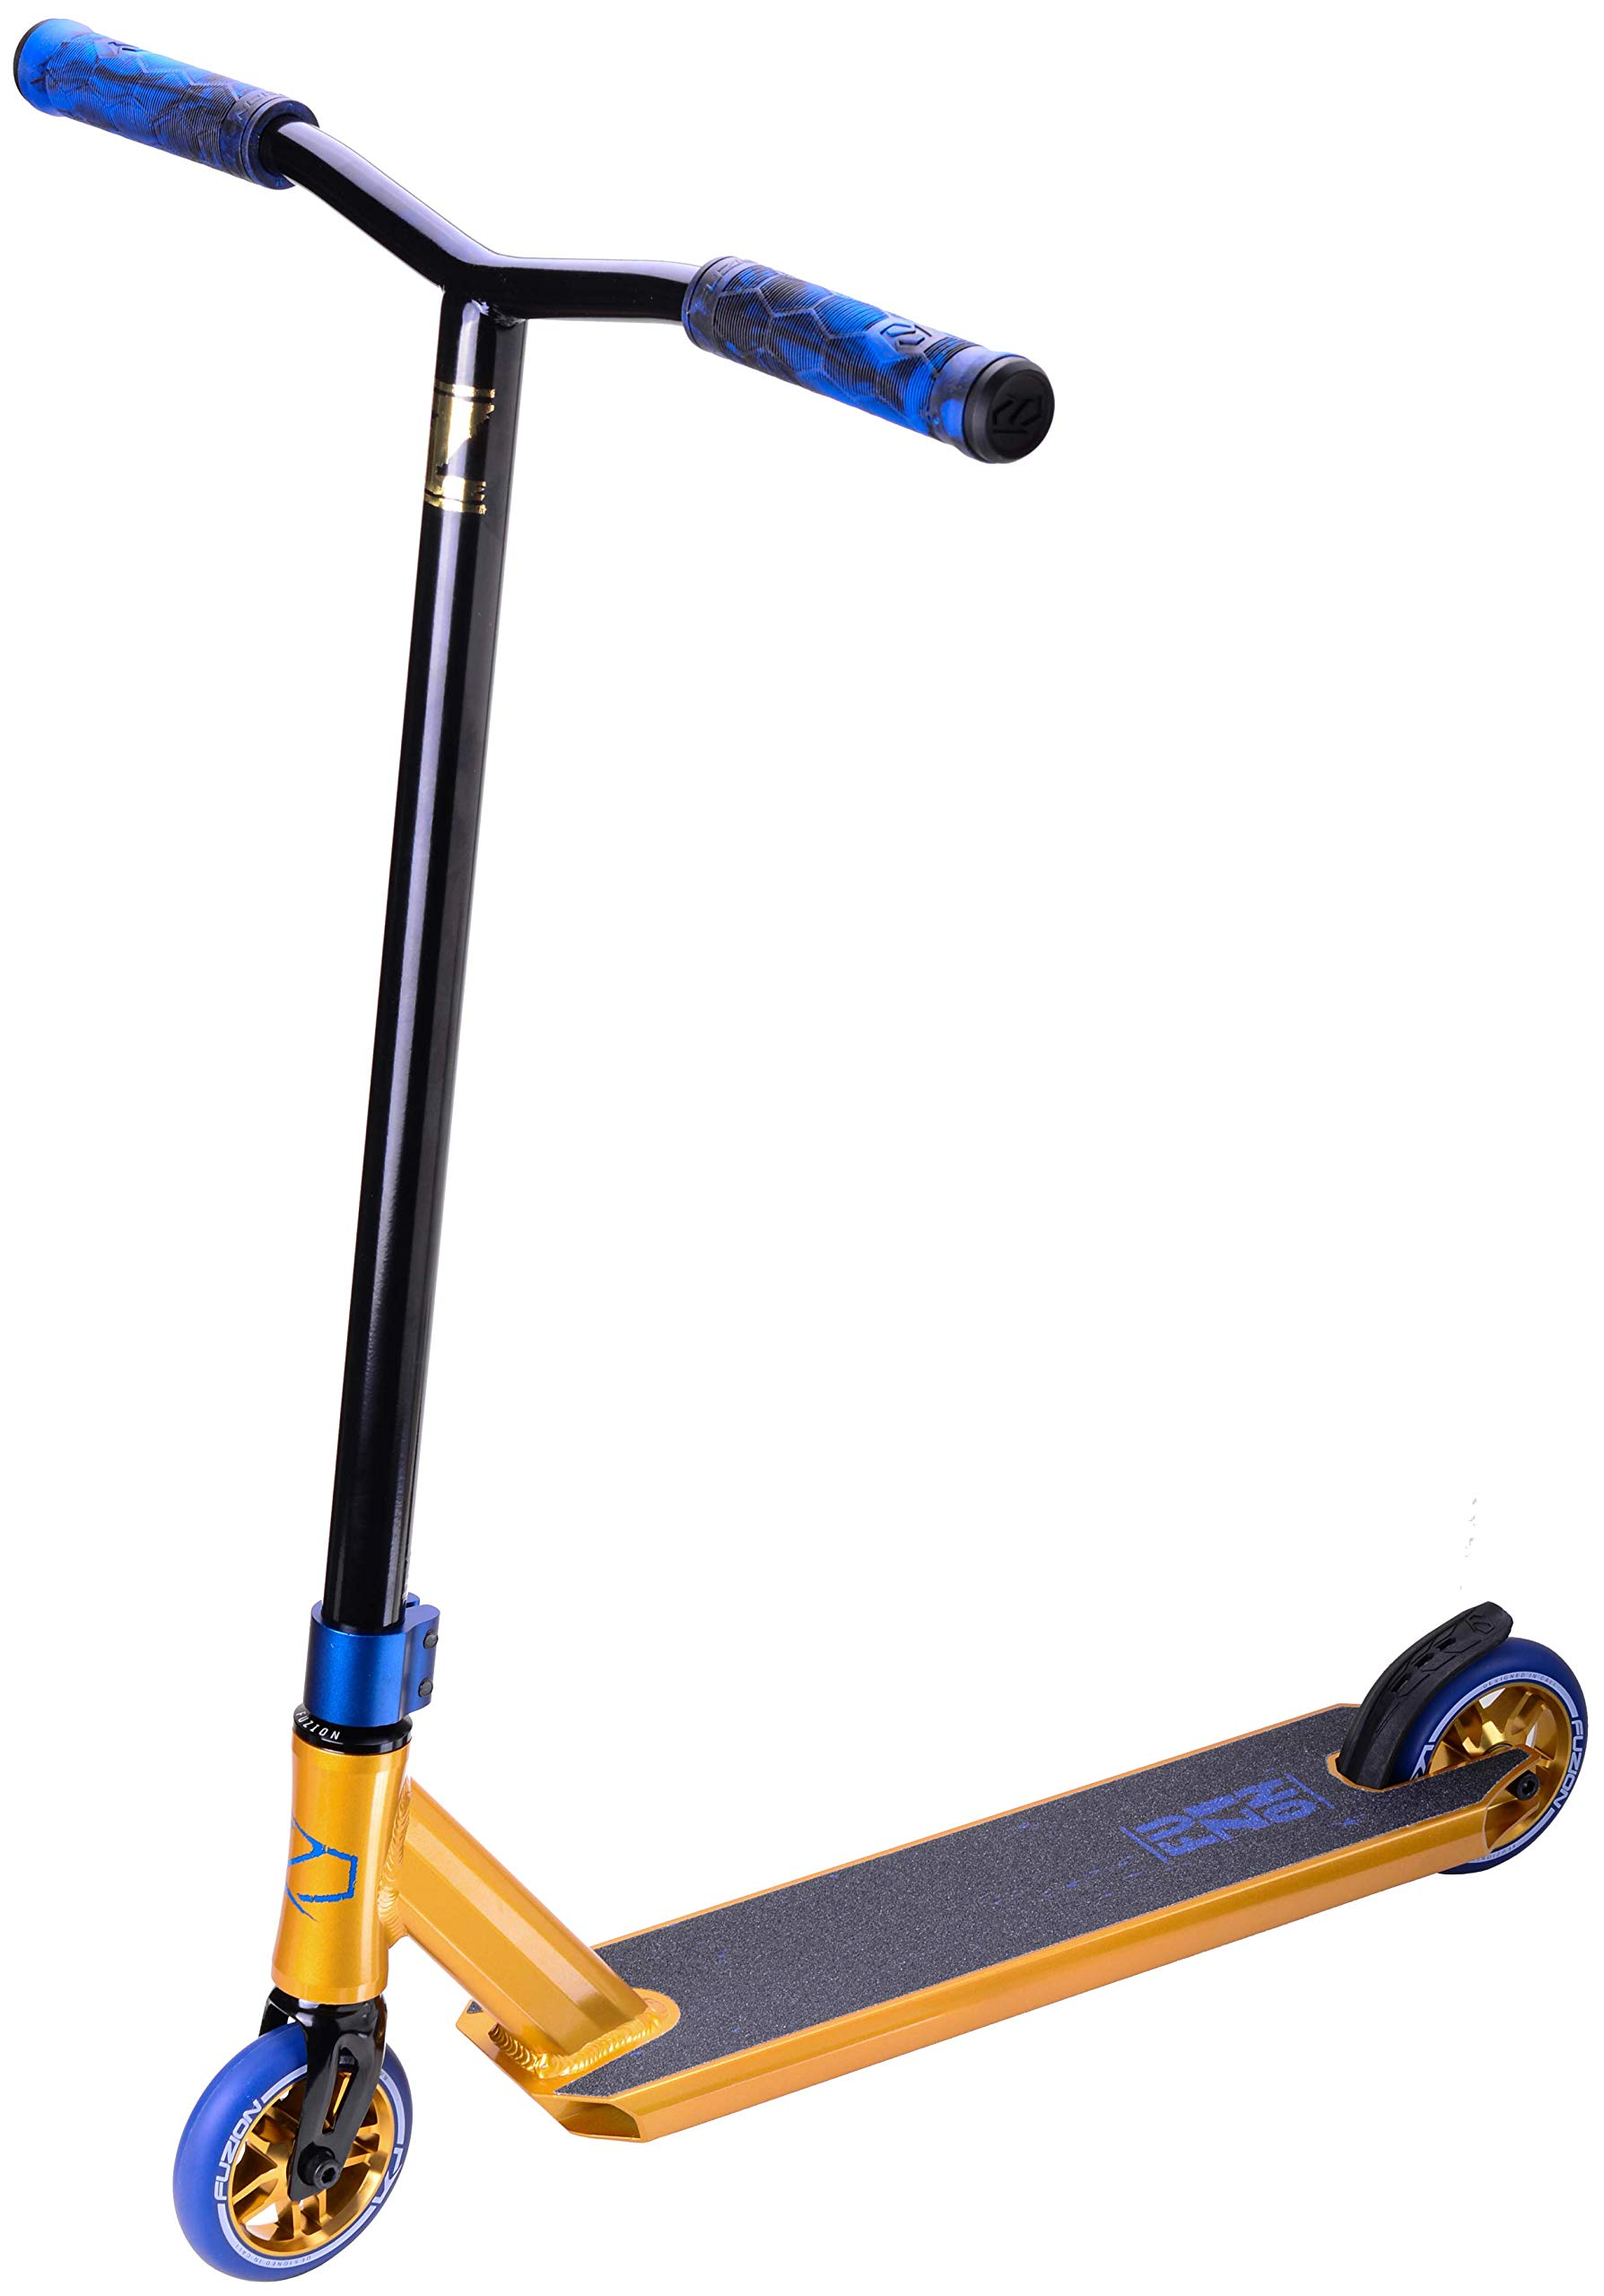 Fuzion Z250 Pro Scooters - Trick Scooter - Intermediate and Beginner Stunt Scooters for Kids 8 Years and Up, Teens and Adults - Durable Freestyle Kick Scooter for Boys and Girls (2019 Gold) by Fuzion